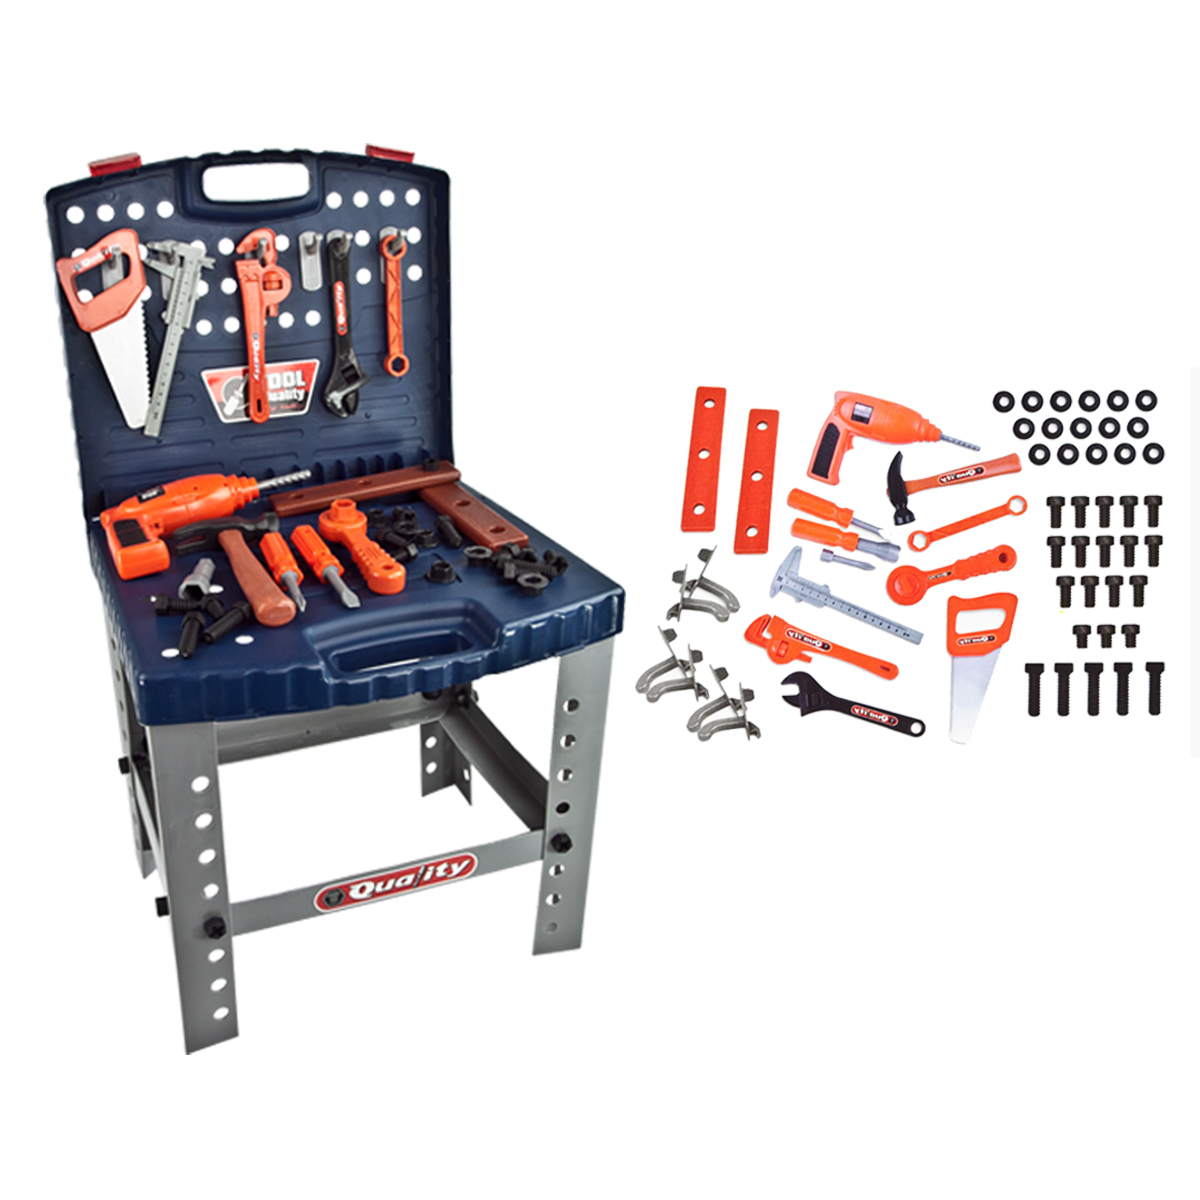 Toy Tool Sets For Boys : Deluxe toy workshop tools set childrens boys kids pretend